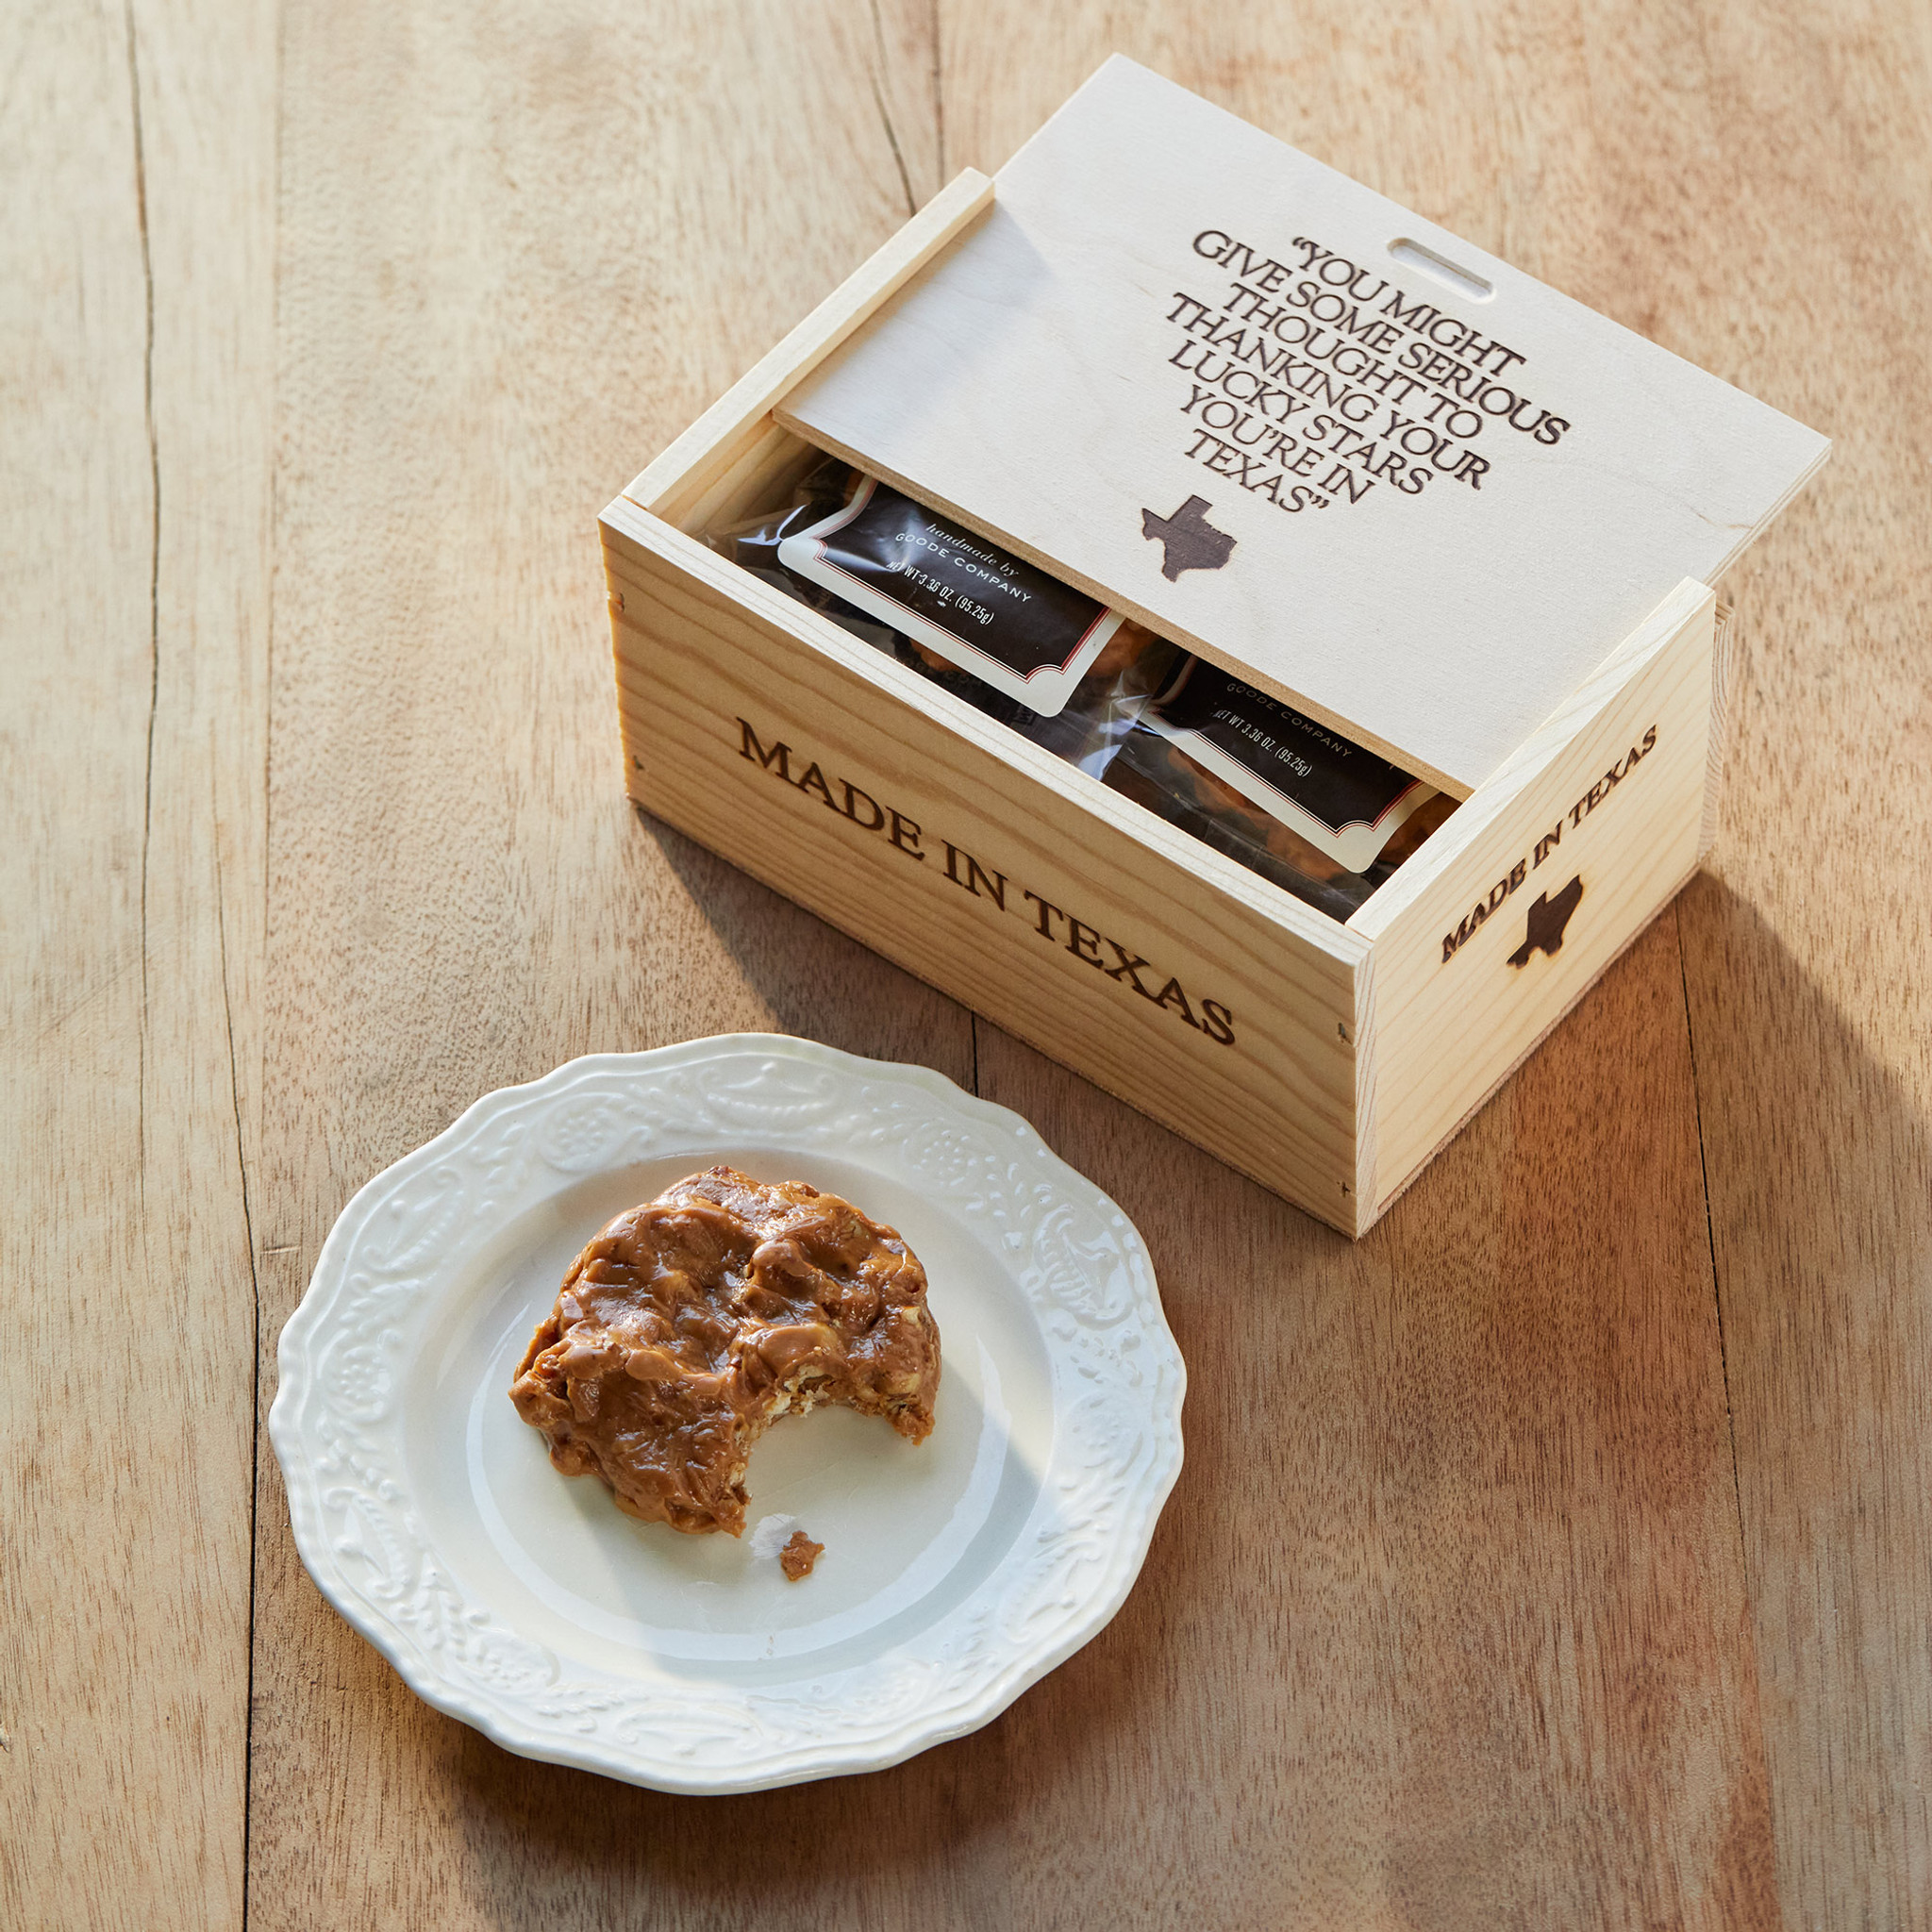 6 Assorted Praline Delights, individually wrapped in a wooden gift box.